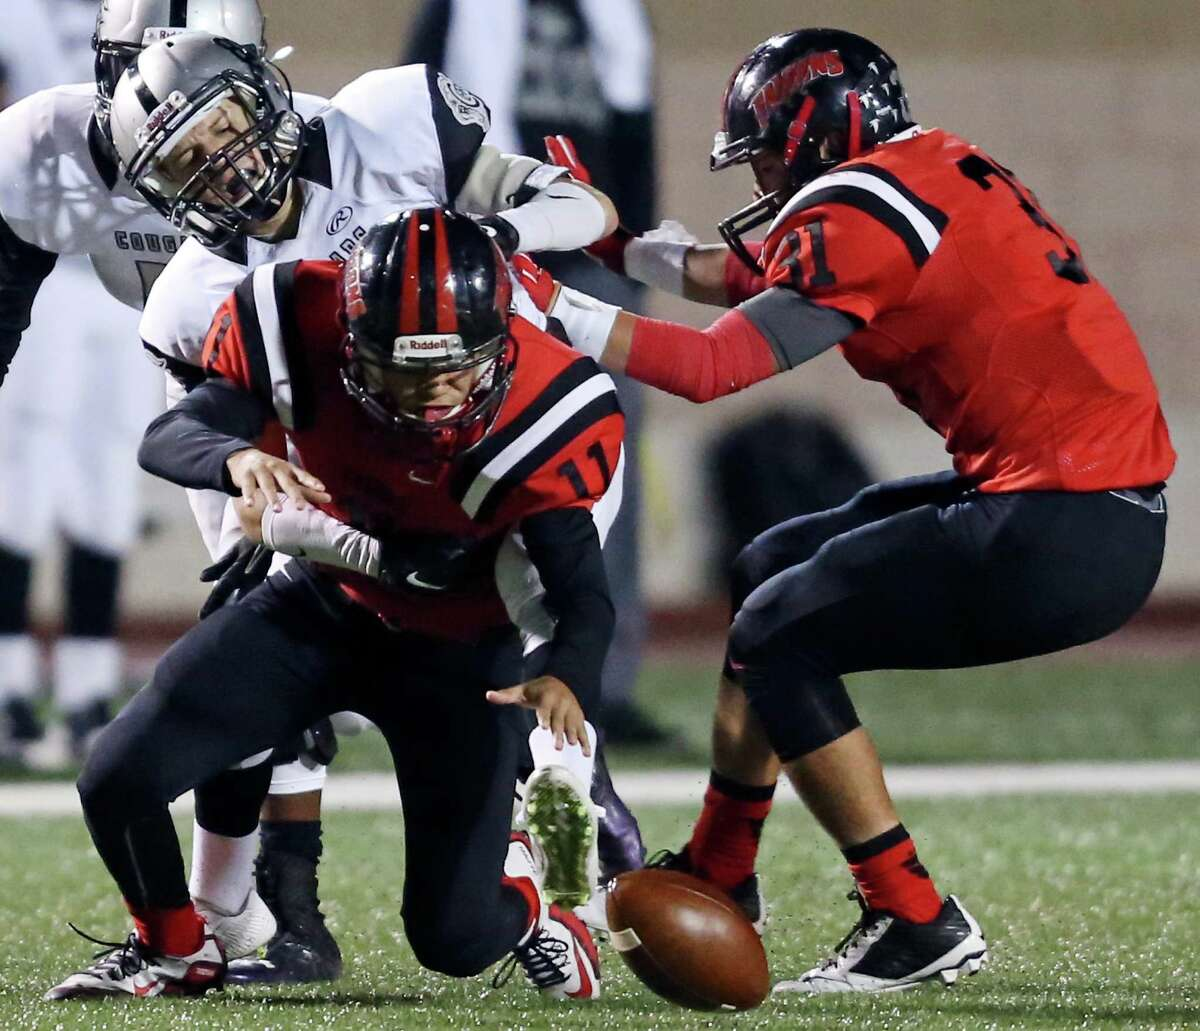 Stevens' Tristan Castaneda chases after a fumble after an interception on Clark's Tate Schorr (rear) as Stevens' Josh Contreras moves in on the play during first half action Friday Nov. 6, 2015 at Farris Stadium.